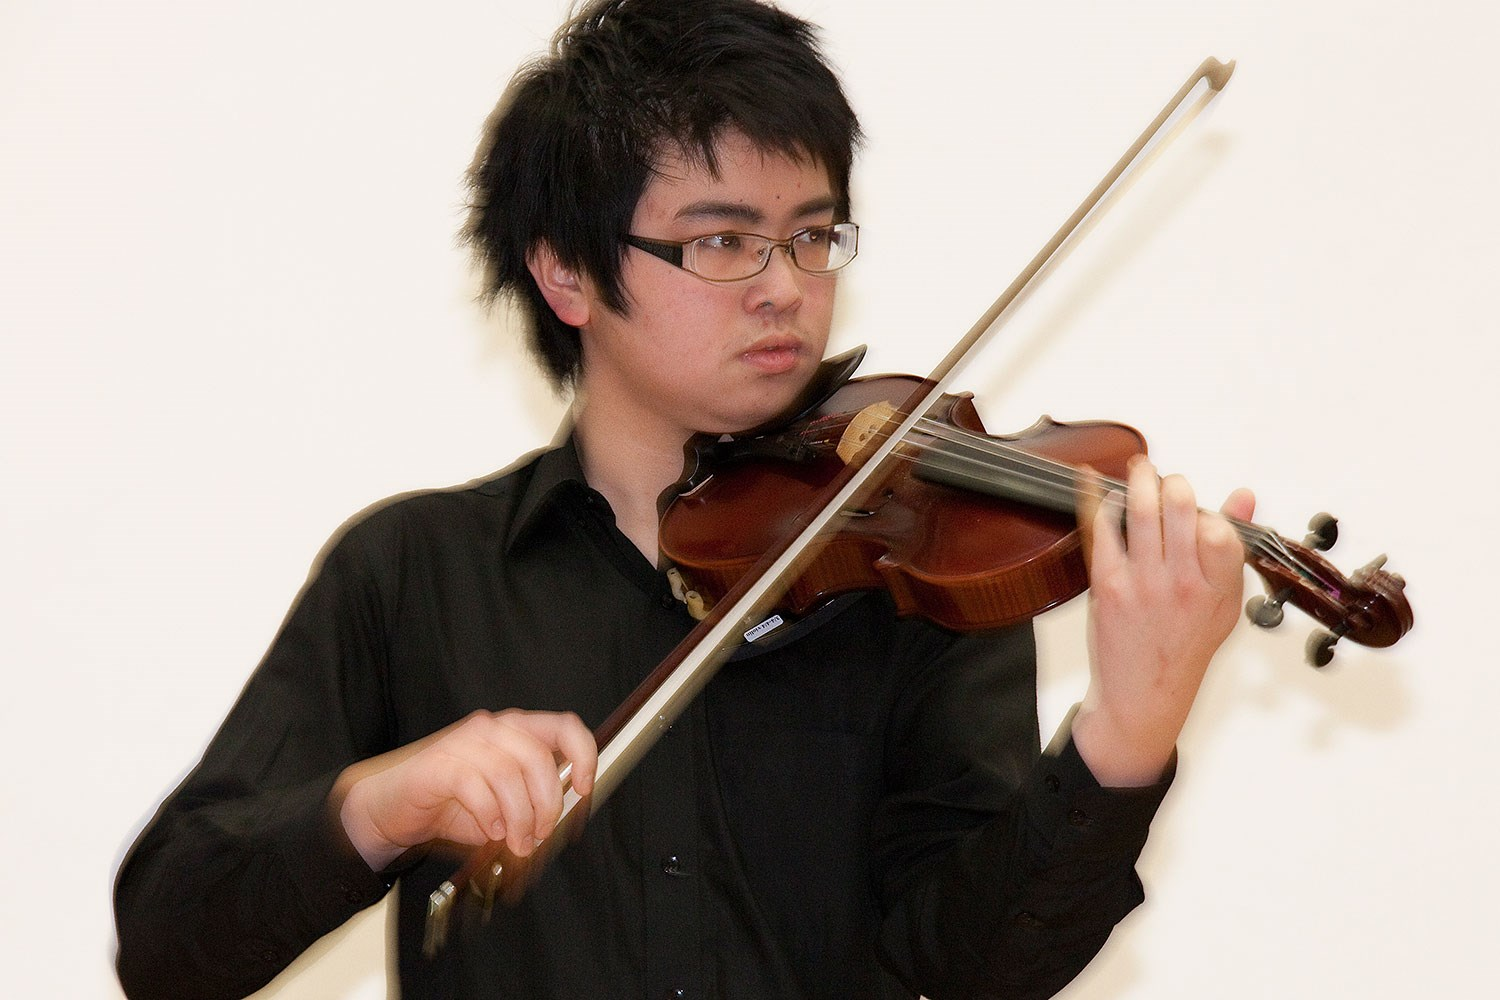 Shetland Young Fiddler of the Year 2009 Chapman Cheng tries out the Shetland fiddle.